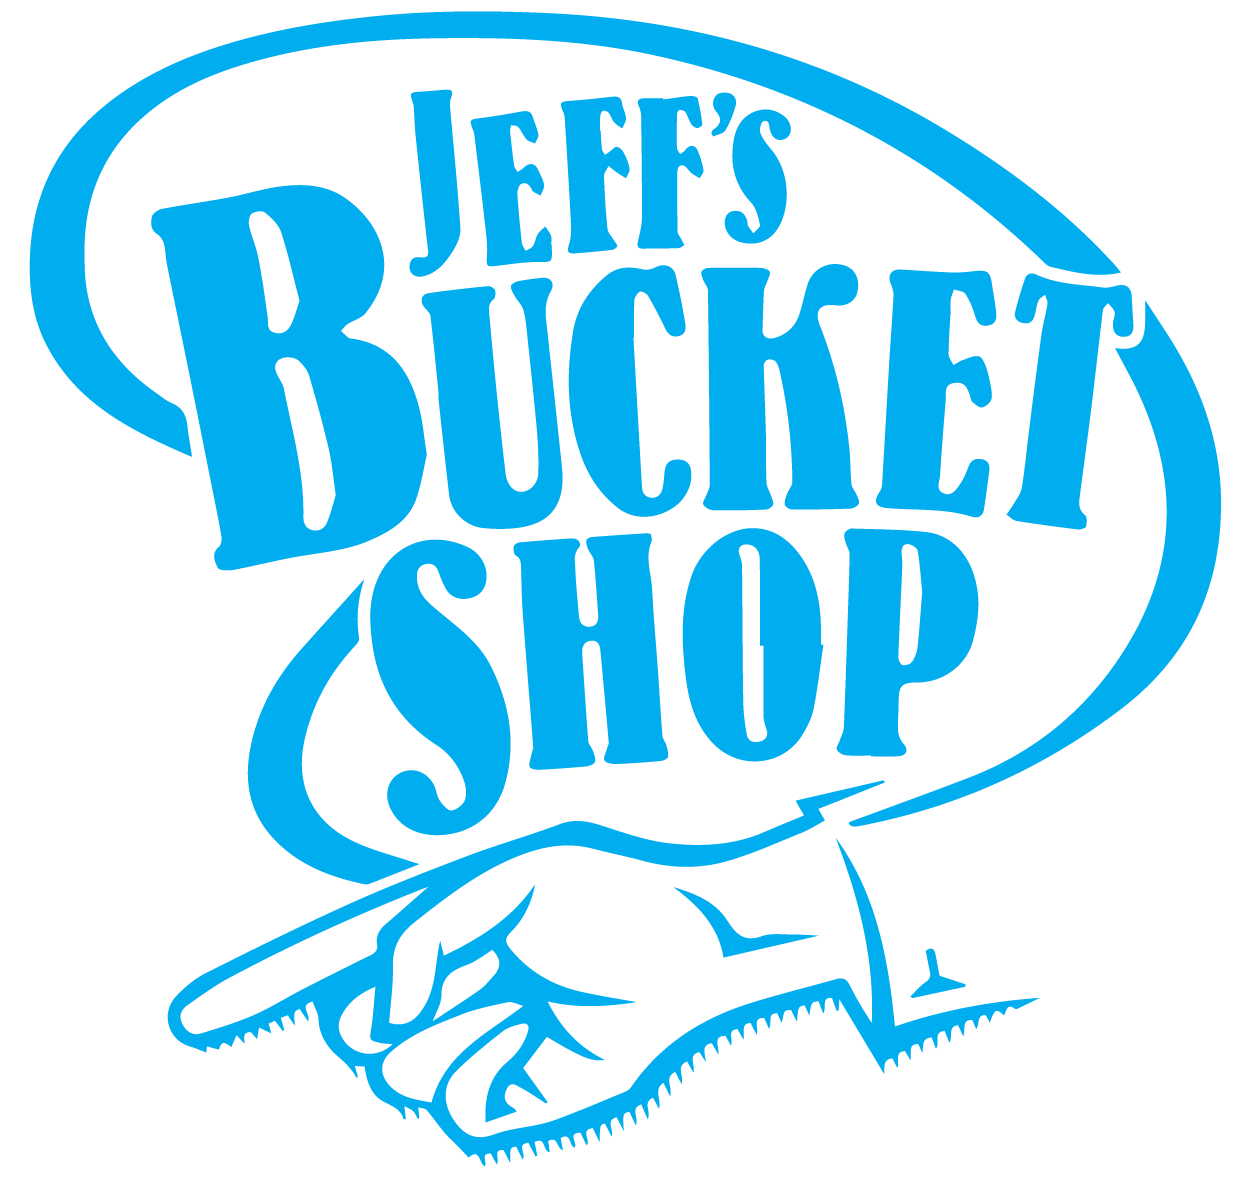 Jeff Bucket Shop